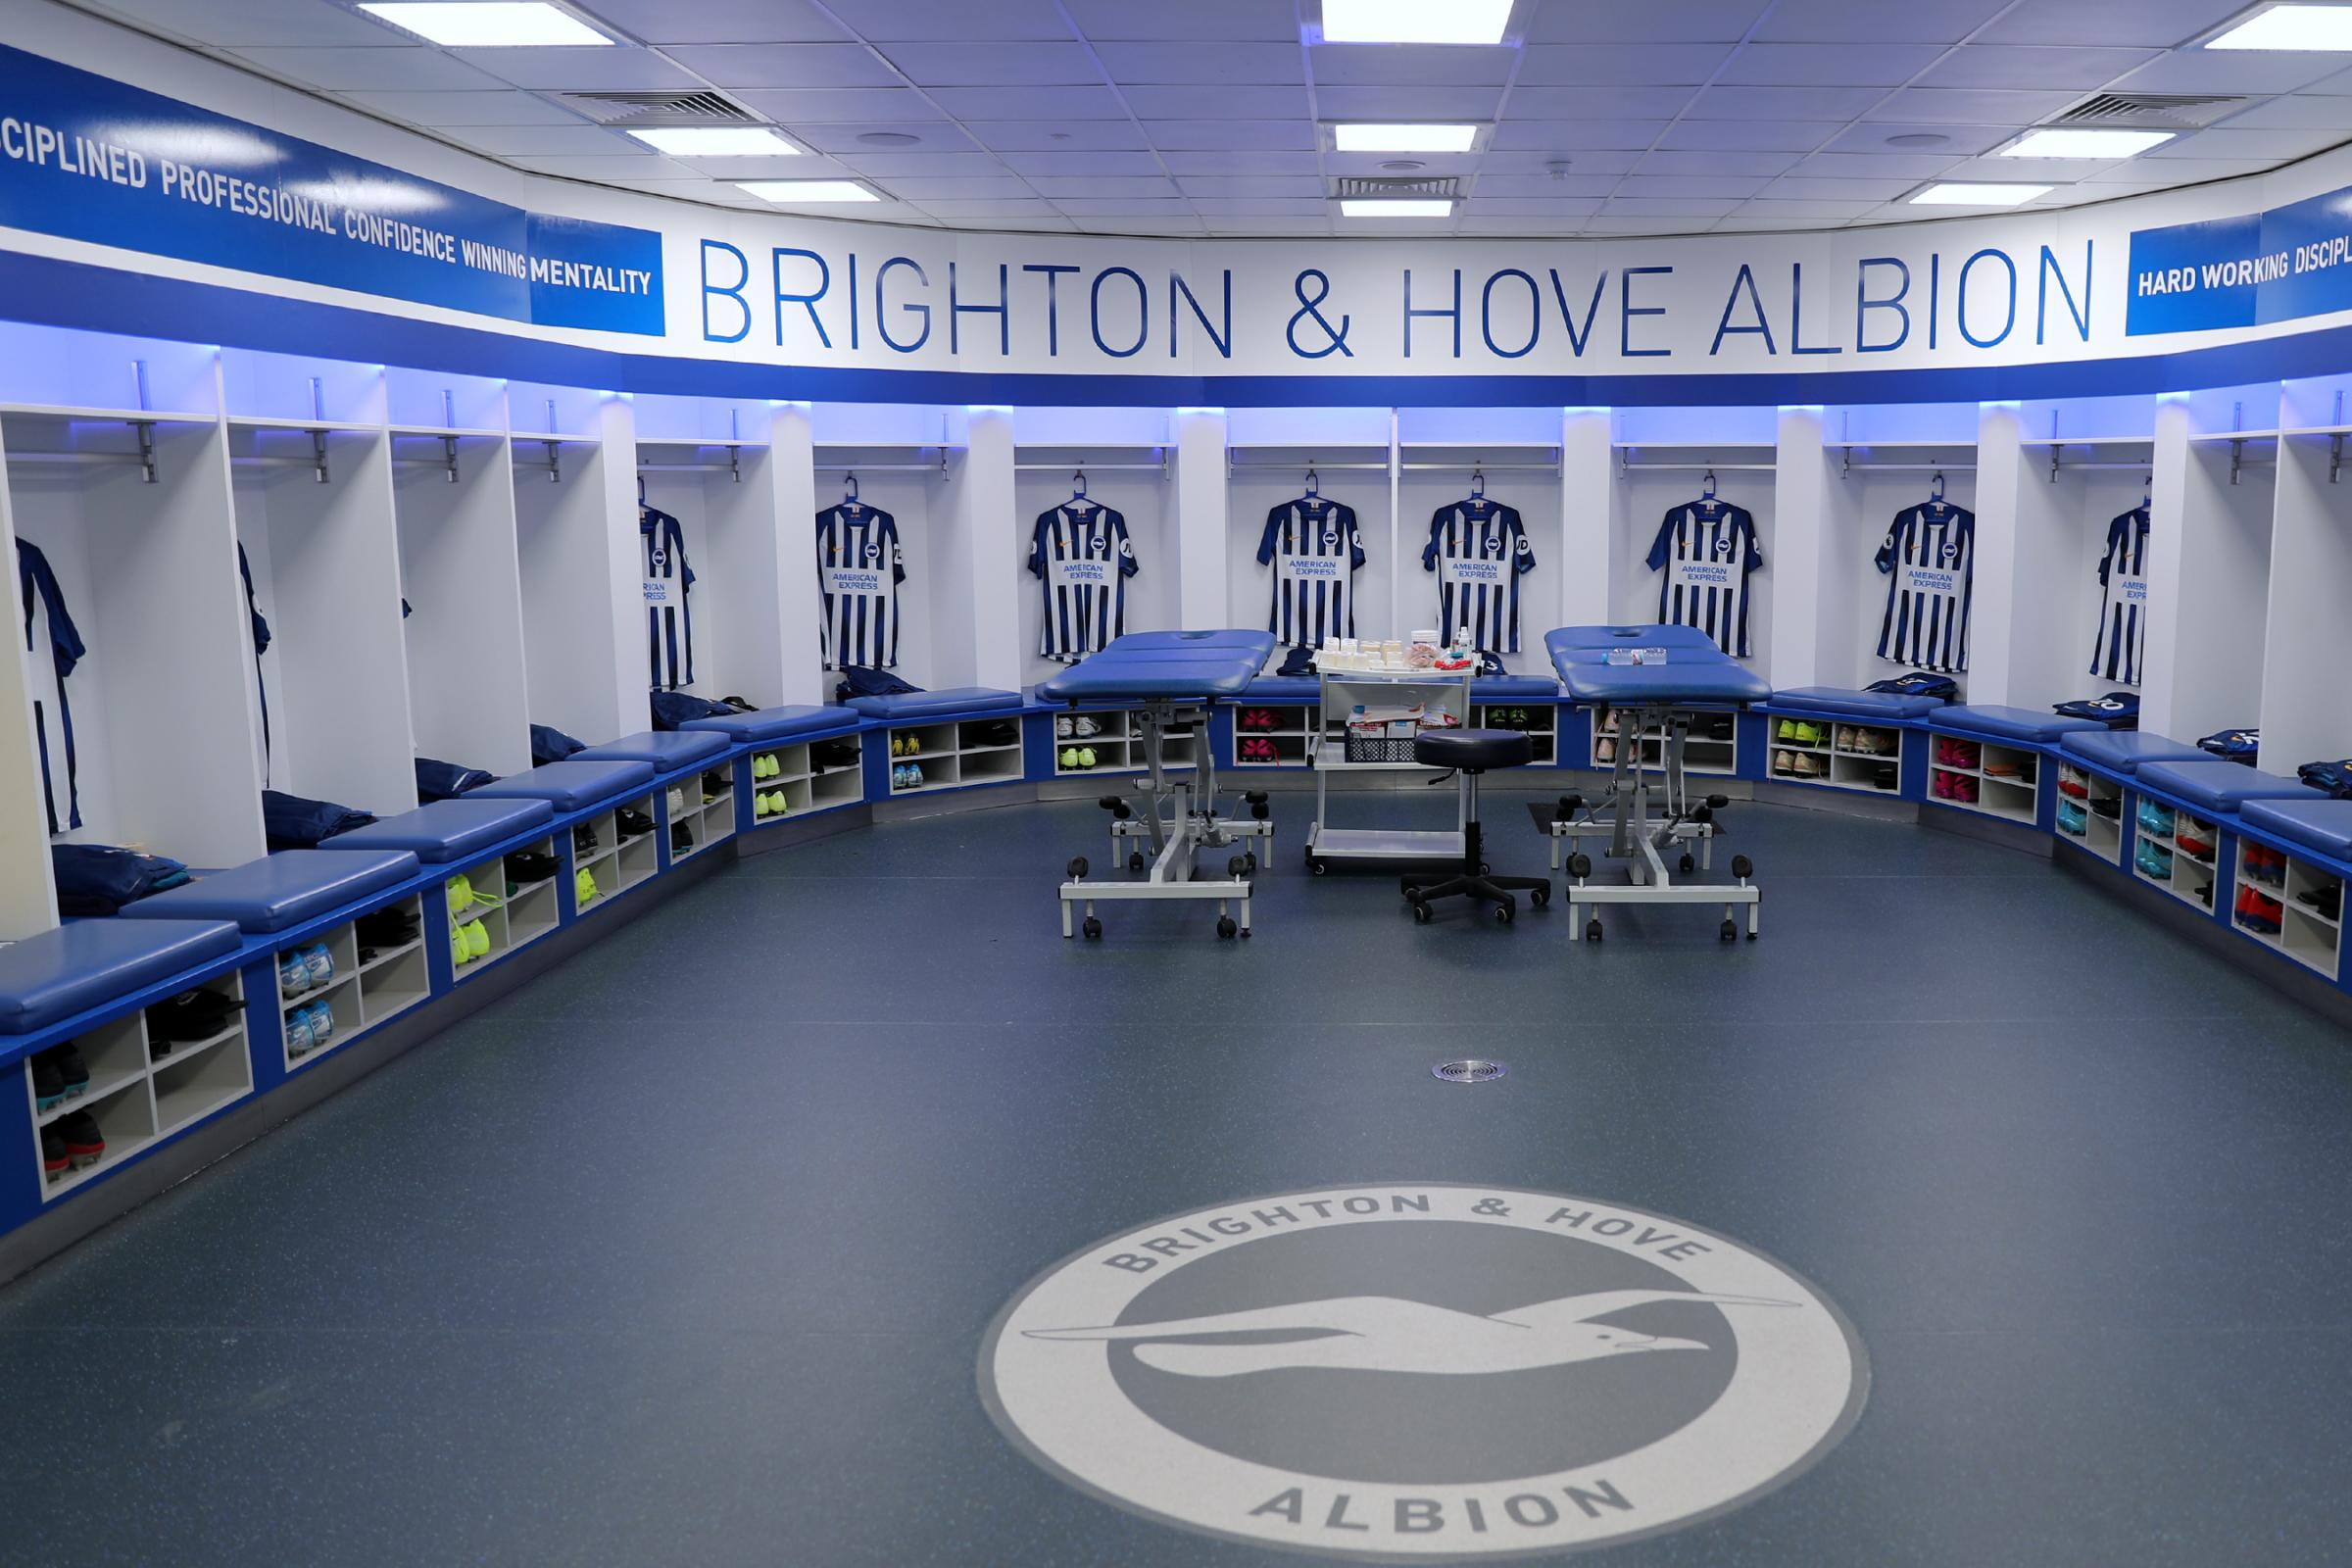 Three golden tickets for a glimpse behind-the-scenes at Brighton and Hove Albion